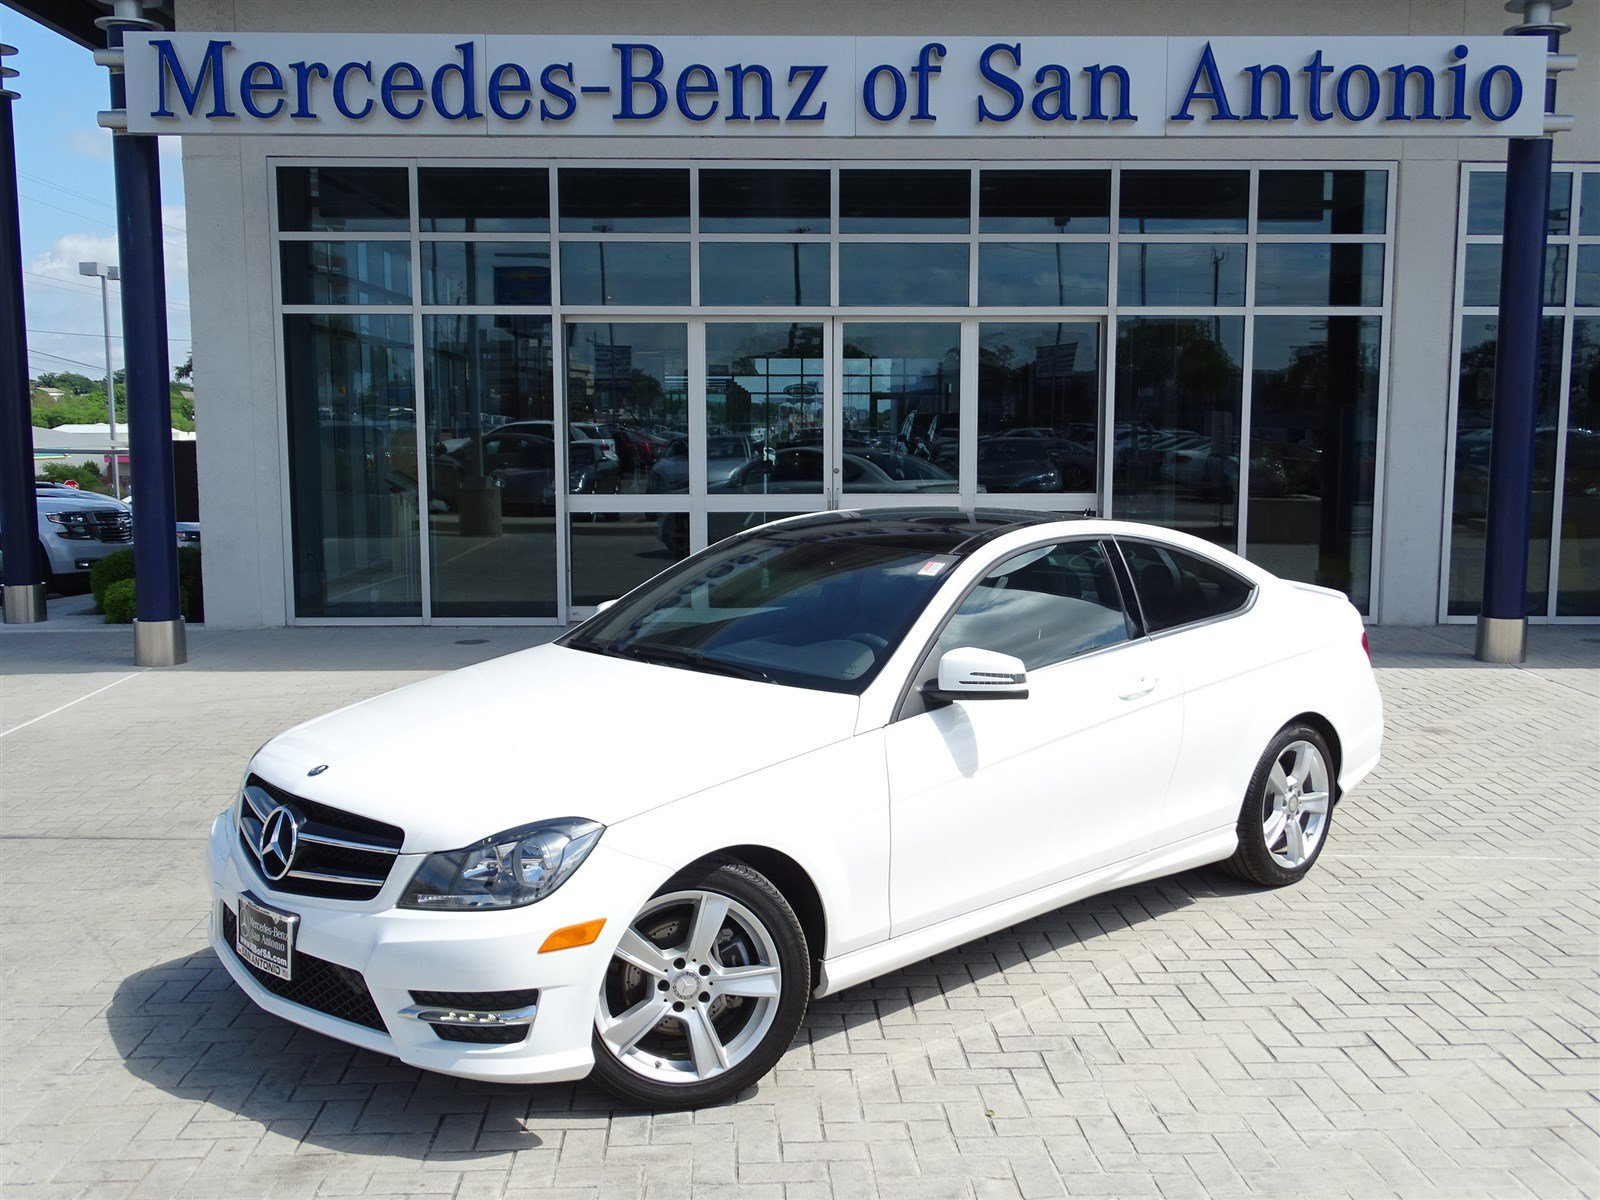 Pre owned 2015 mercedes benz c class c 250 2dr car in san for Mercedes benz pre owned vehicles